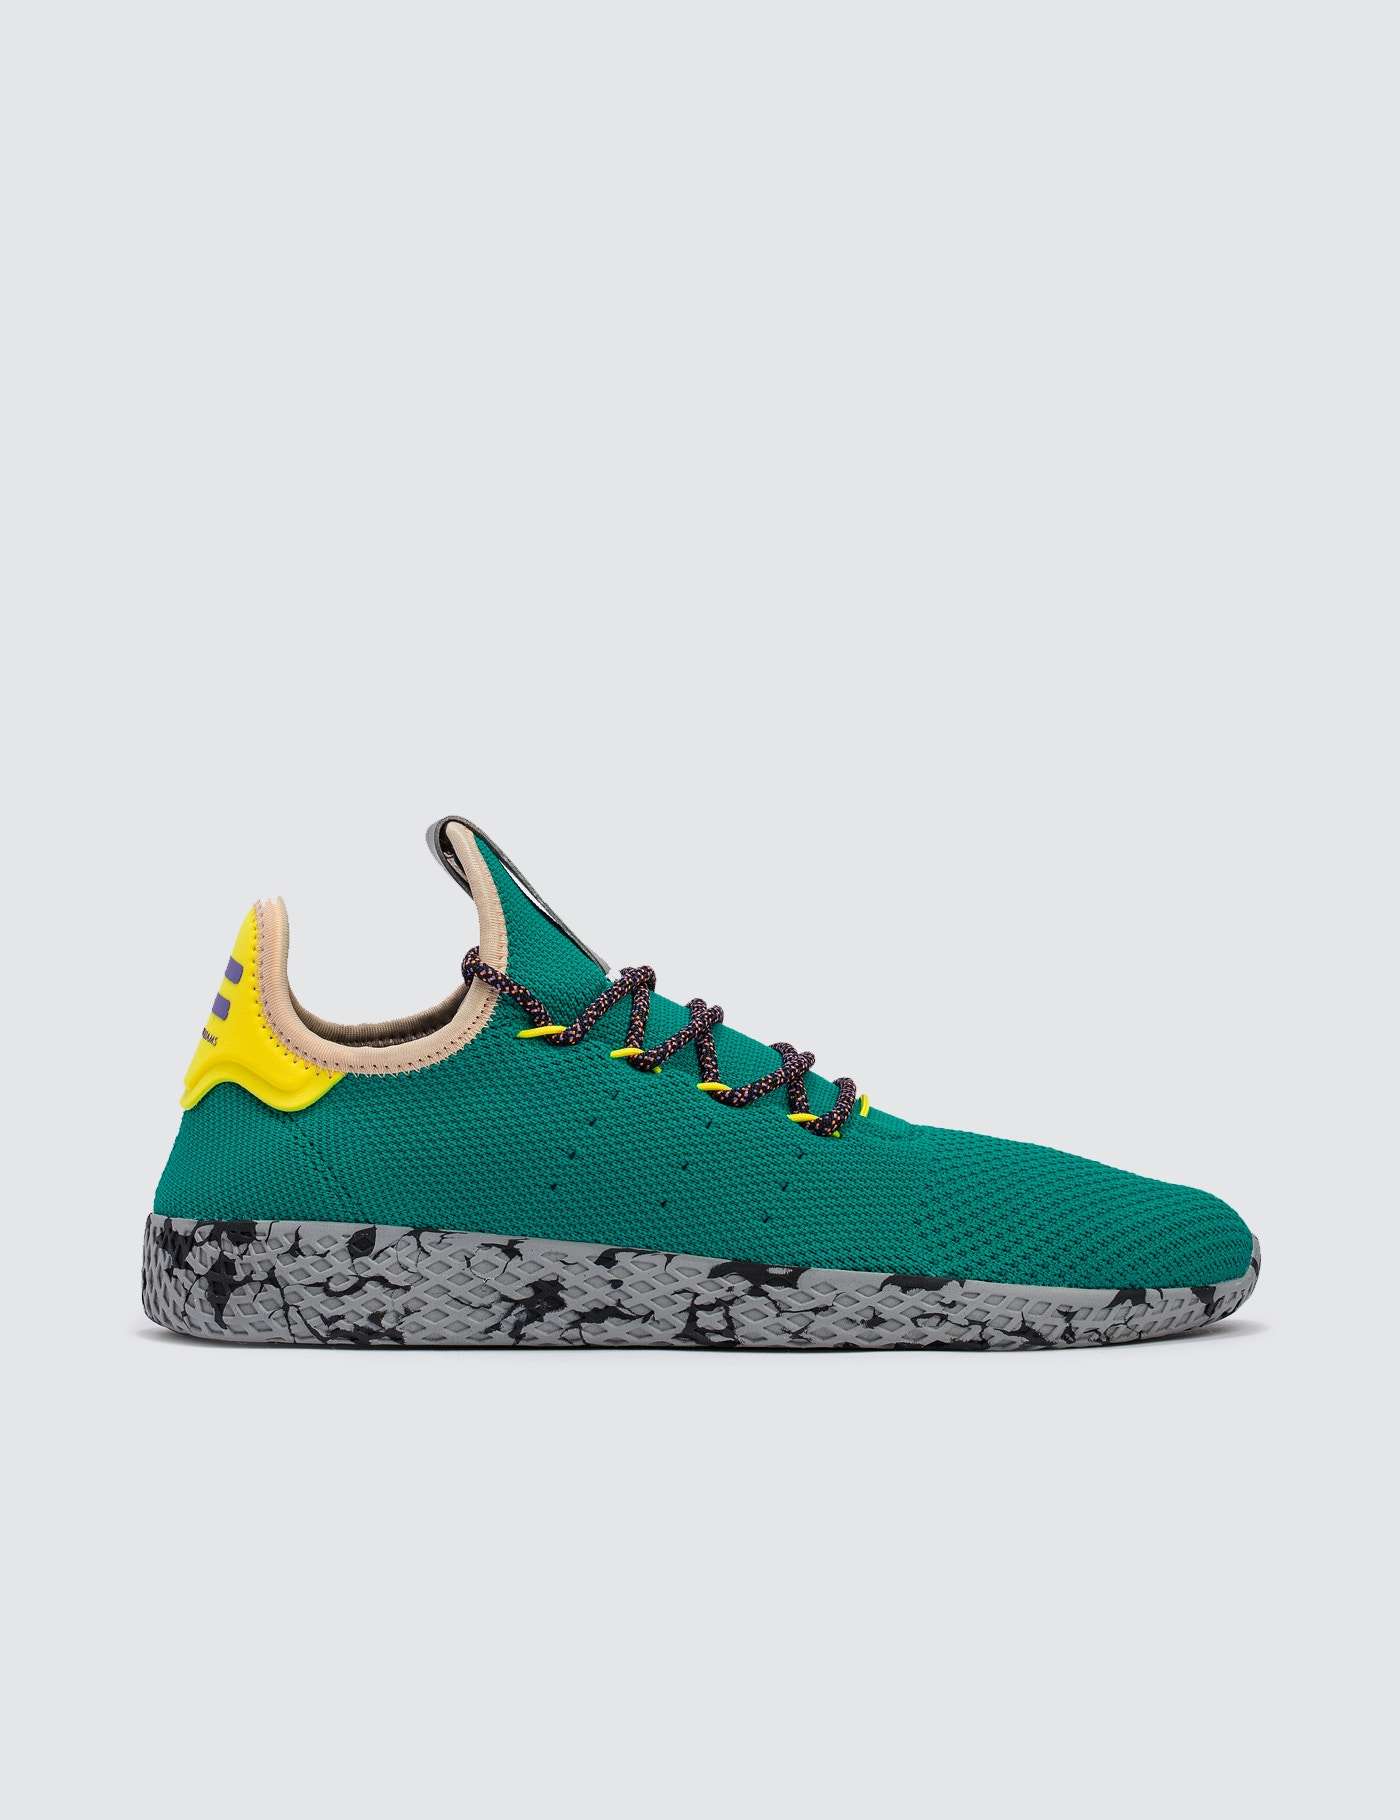 05e16ccb6 Buy Original Adidas Originals Pharrell Williams x PW Tennis HU at ...